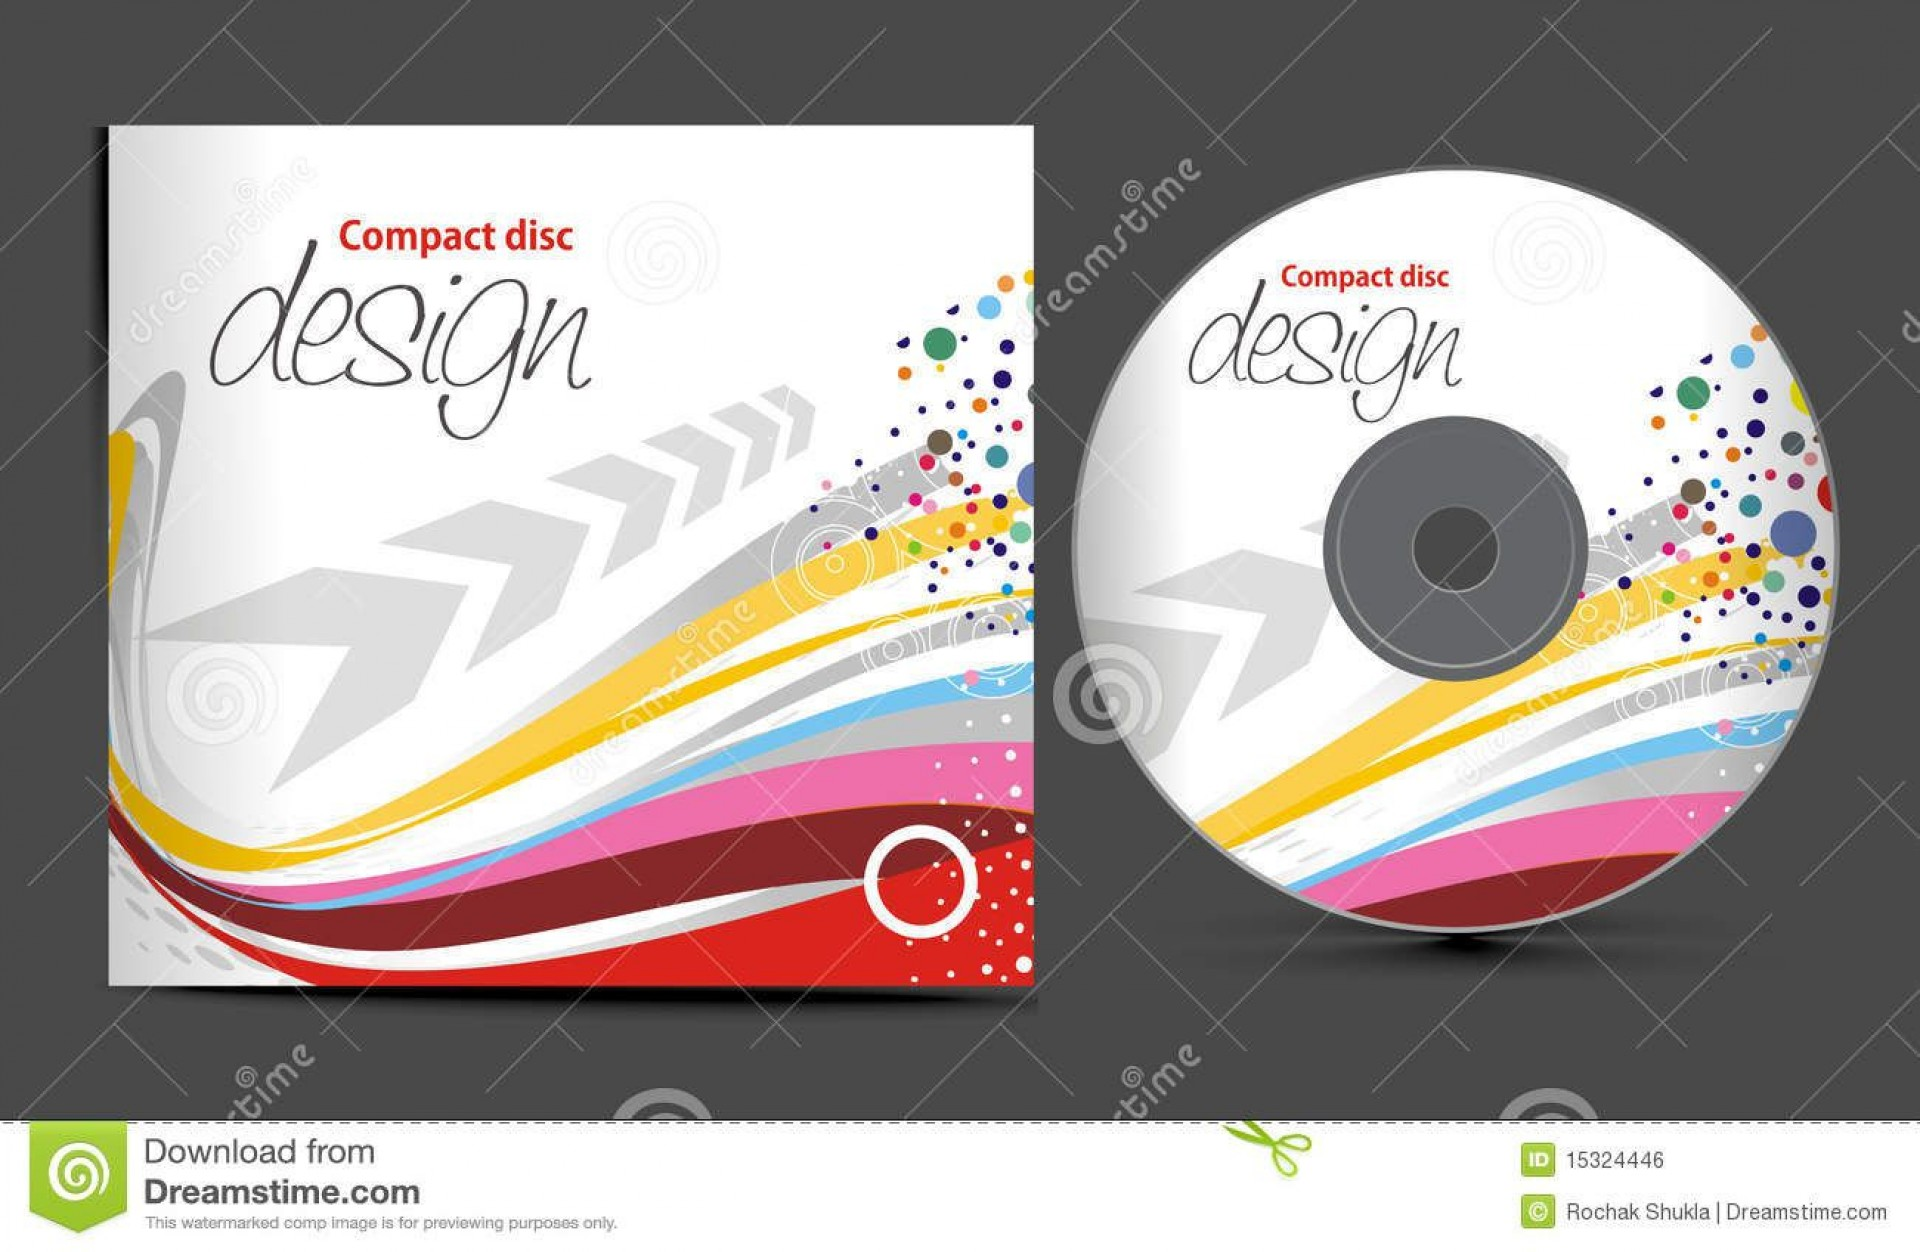 003 Exceptional Cd Design Template Free Picture  Cover Download Word Label Wedding1920